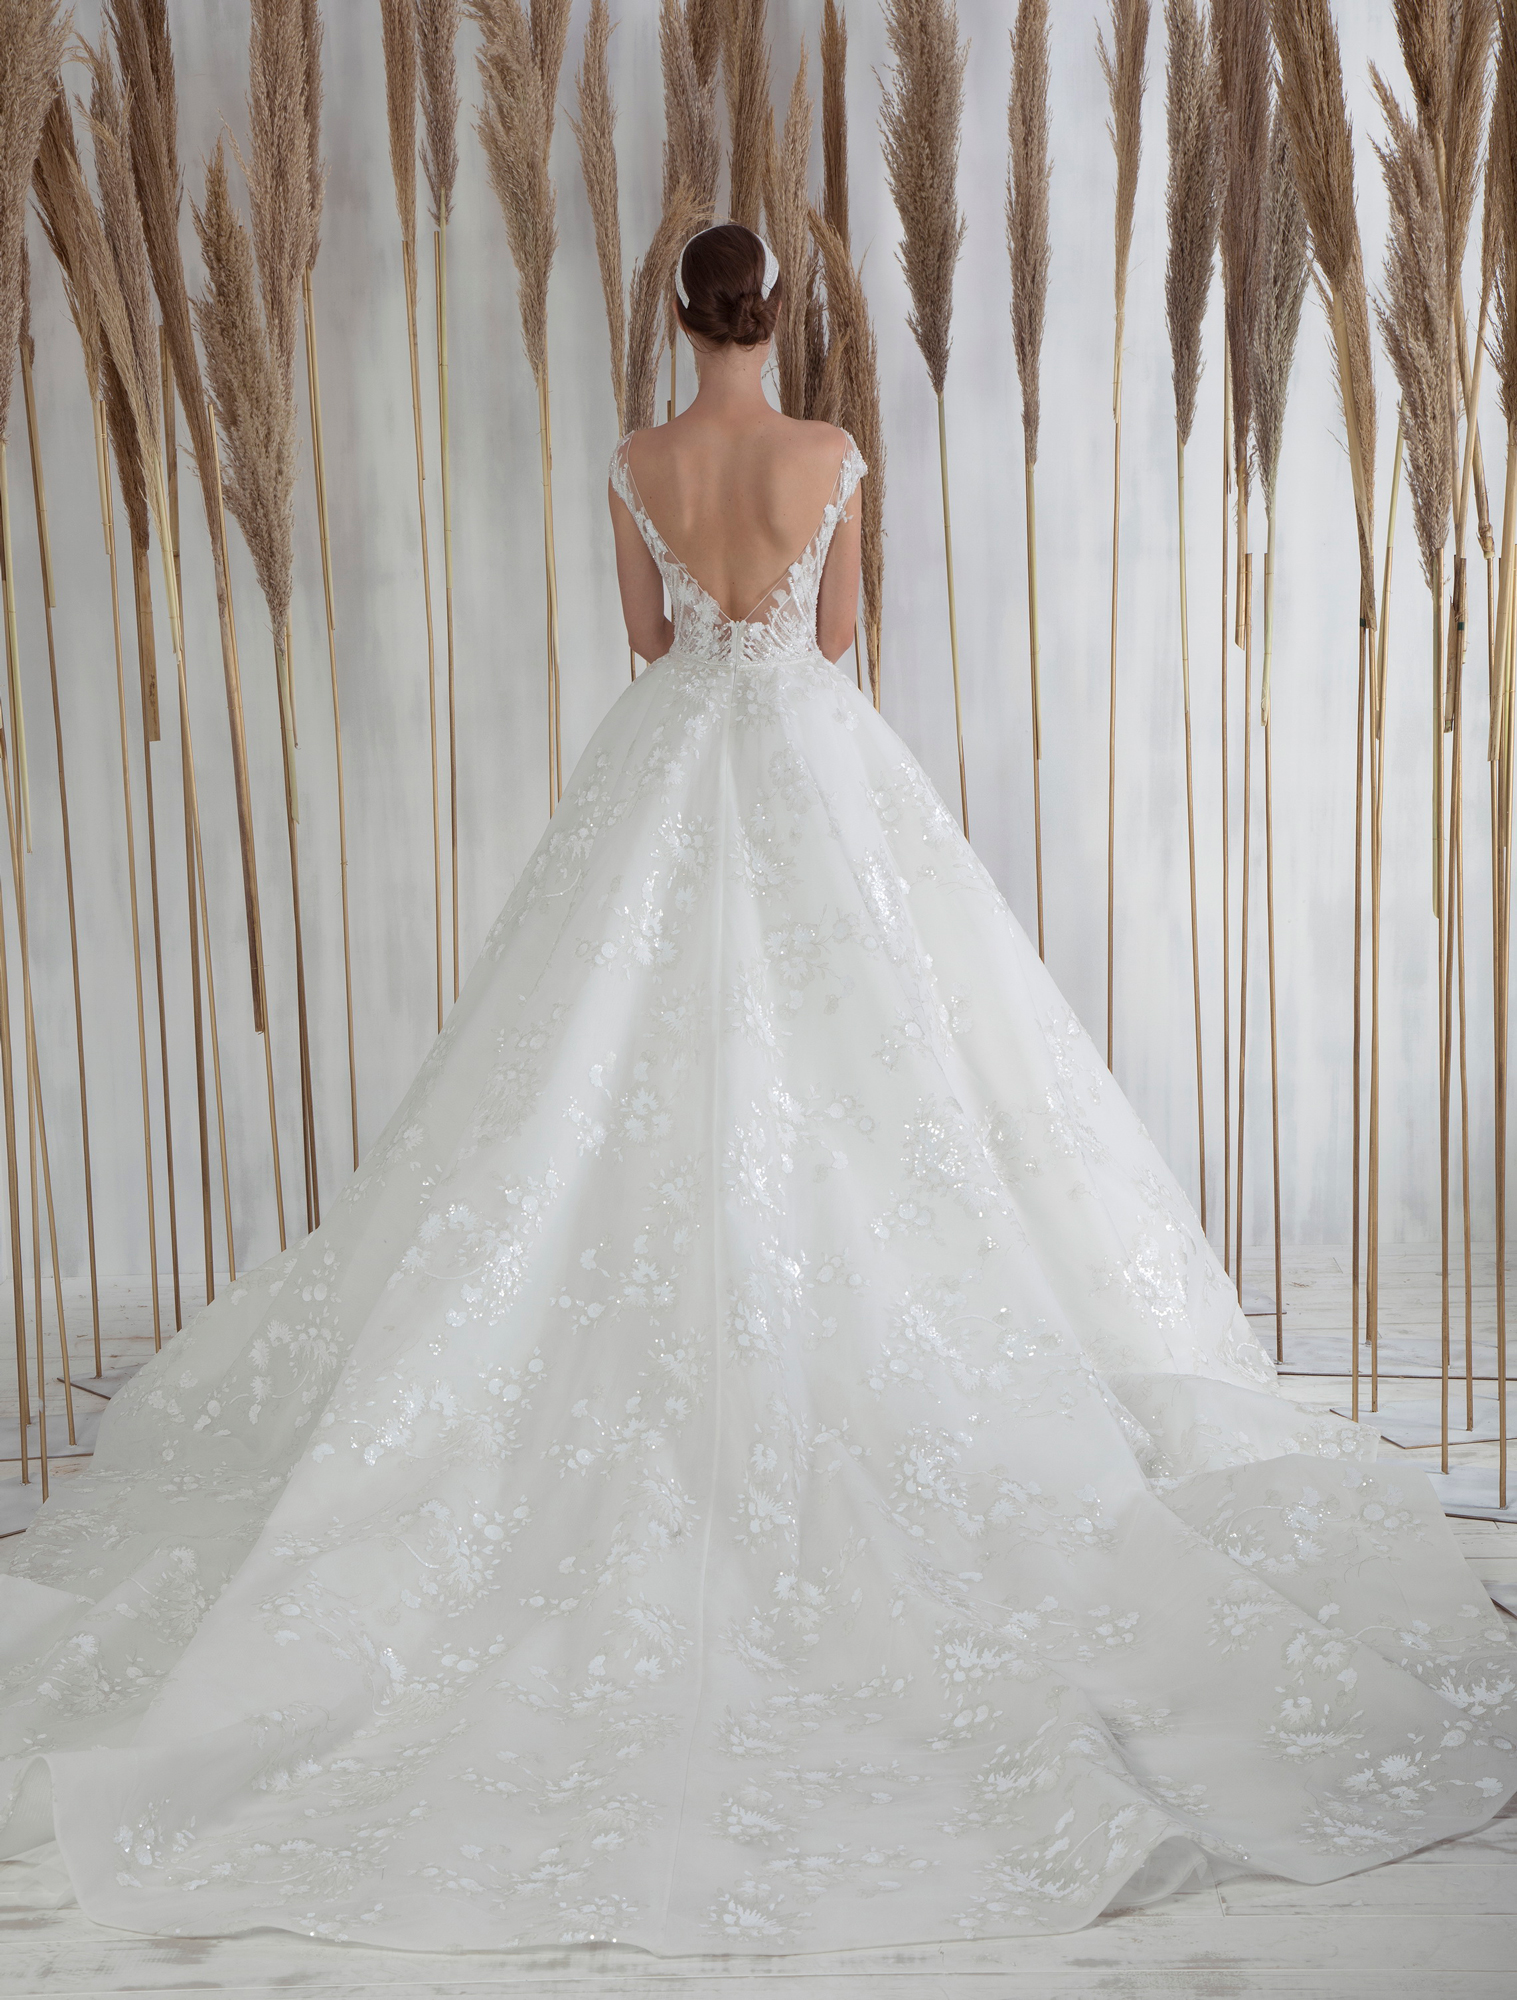 Trudy Bridal Gown by Tony Ward from the La Mariee Collection